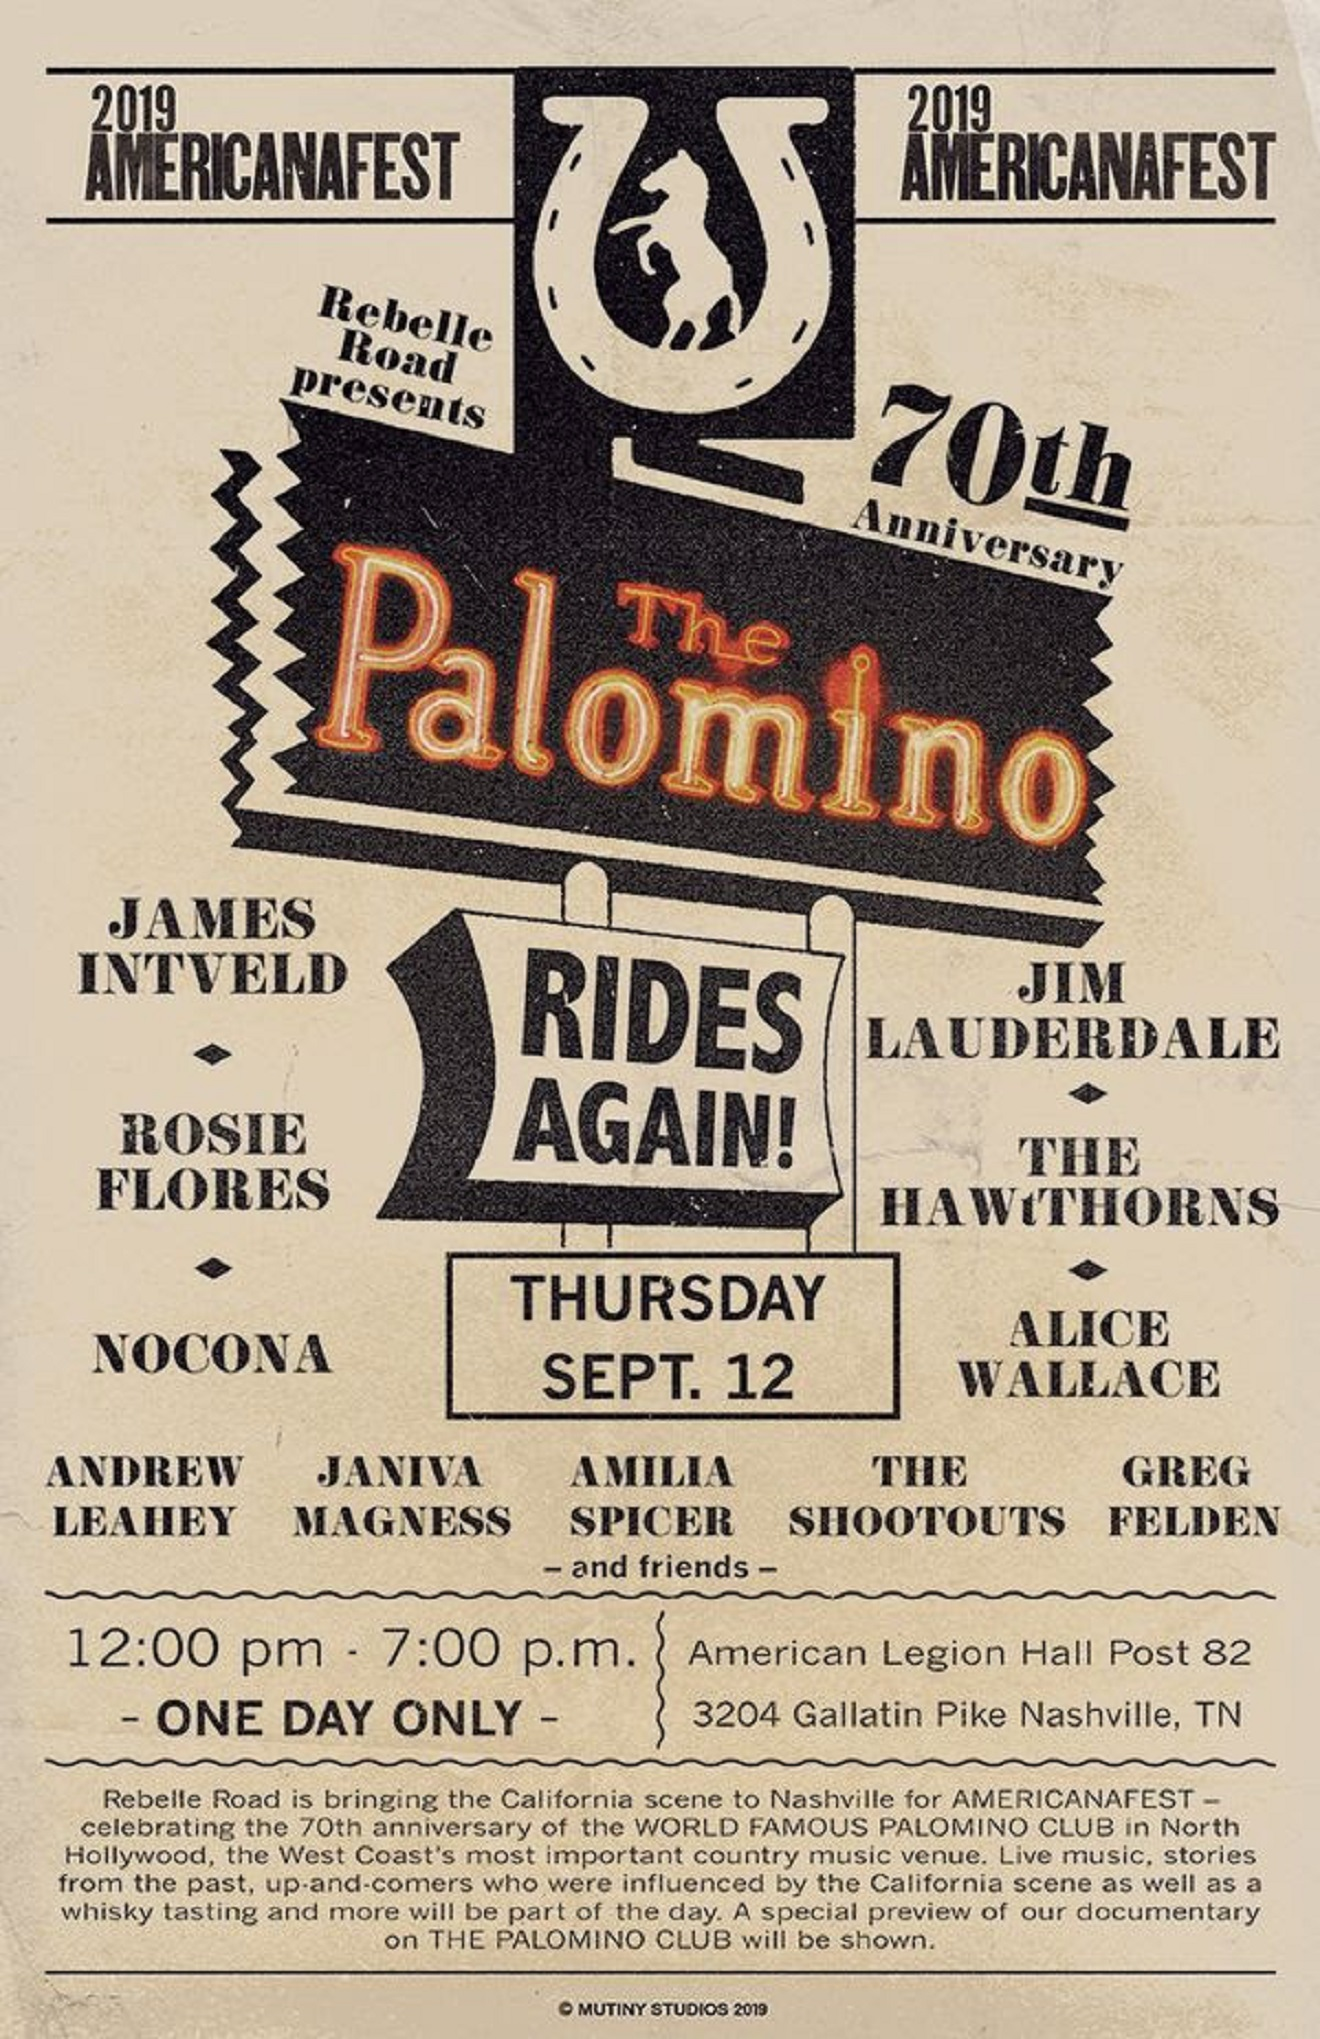 Jim Lauderdae, Rosie Flores, James Intveld Celebrate the 70th Anniversary of the Palomino Nightclub